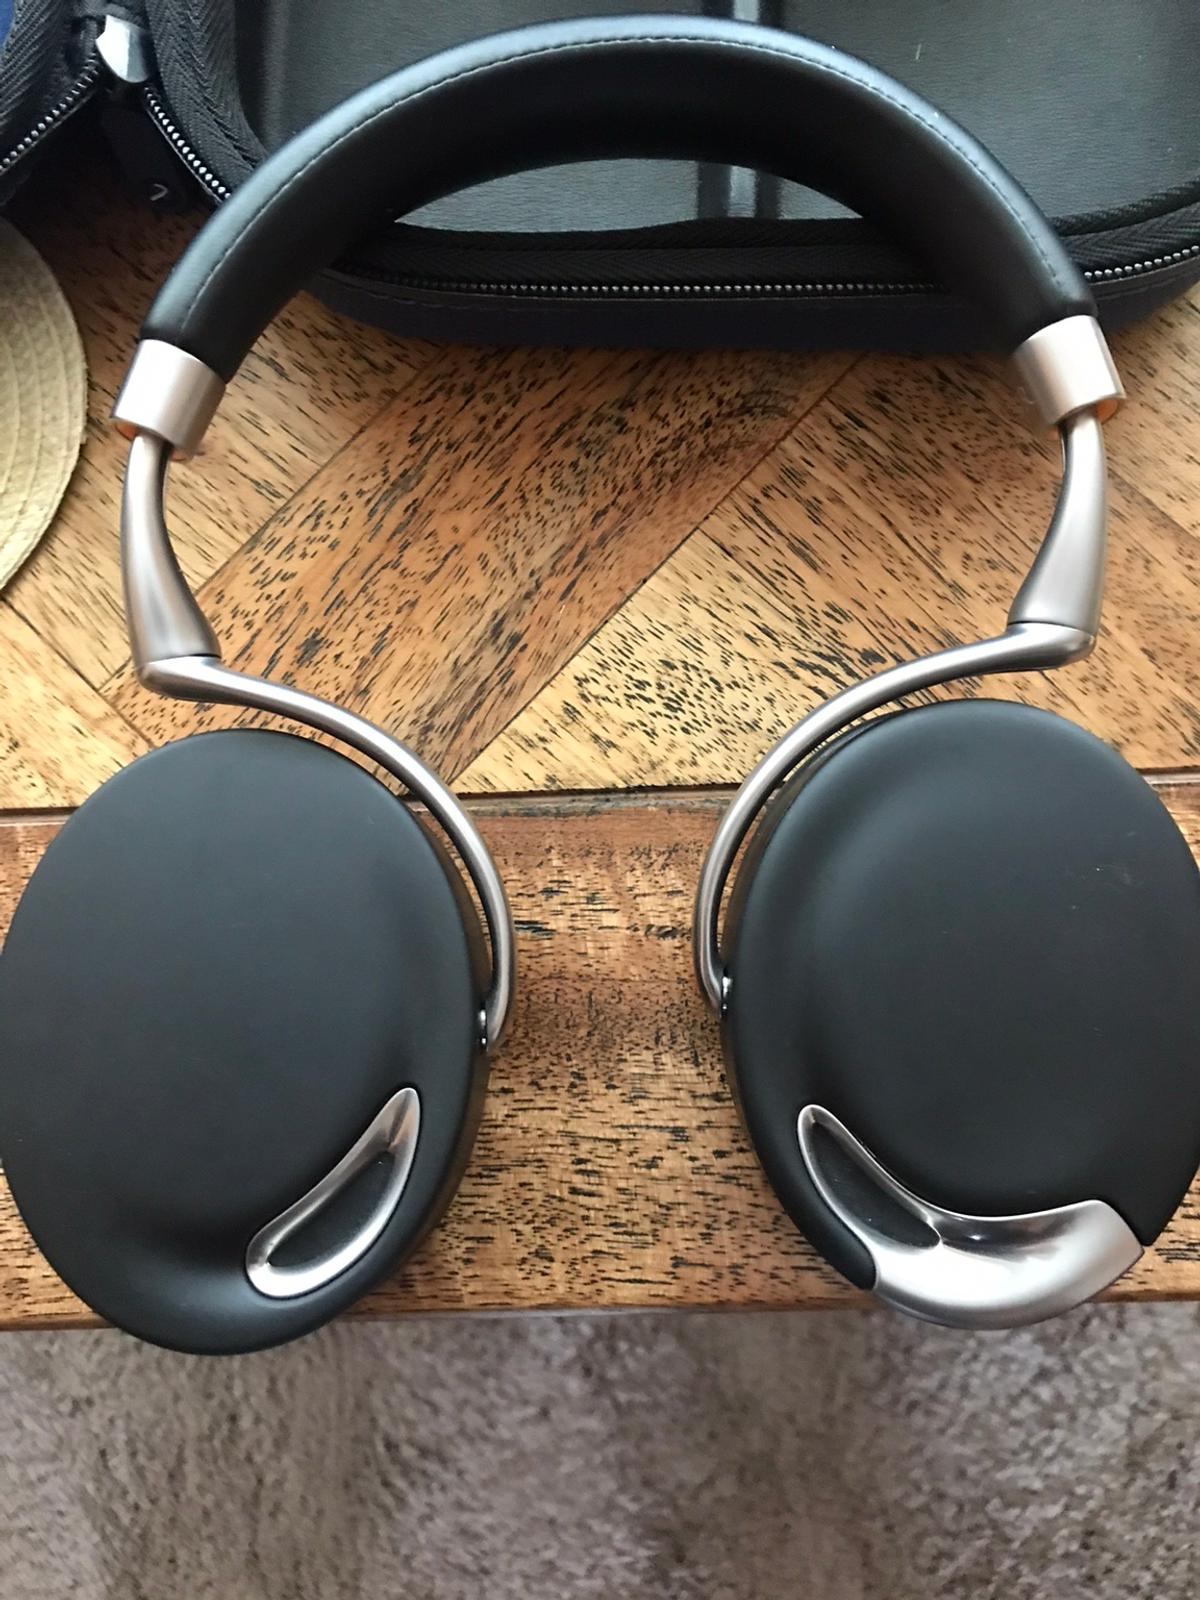 Parrot zic Bluetooth headphones fantastic quality& sound. Reason for sale upgraded no offers at this price